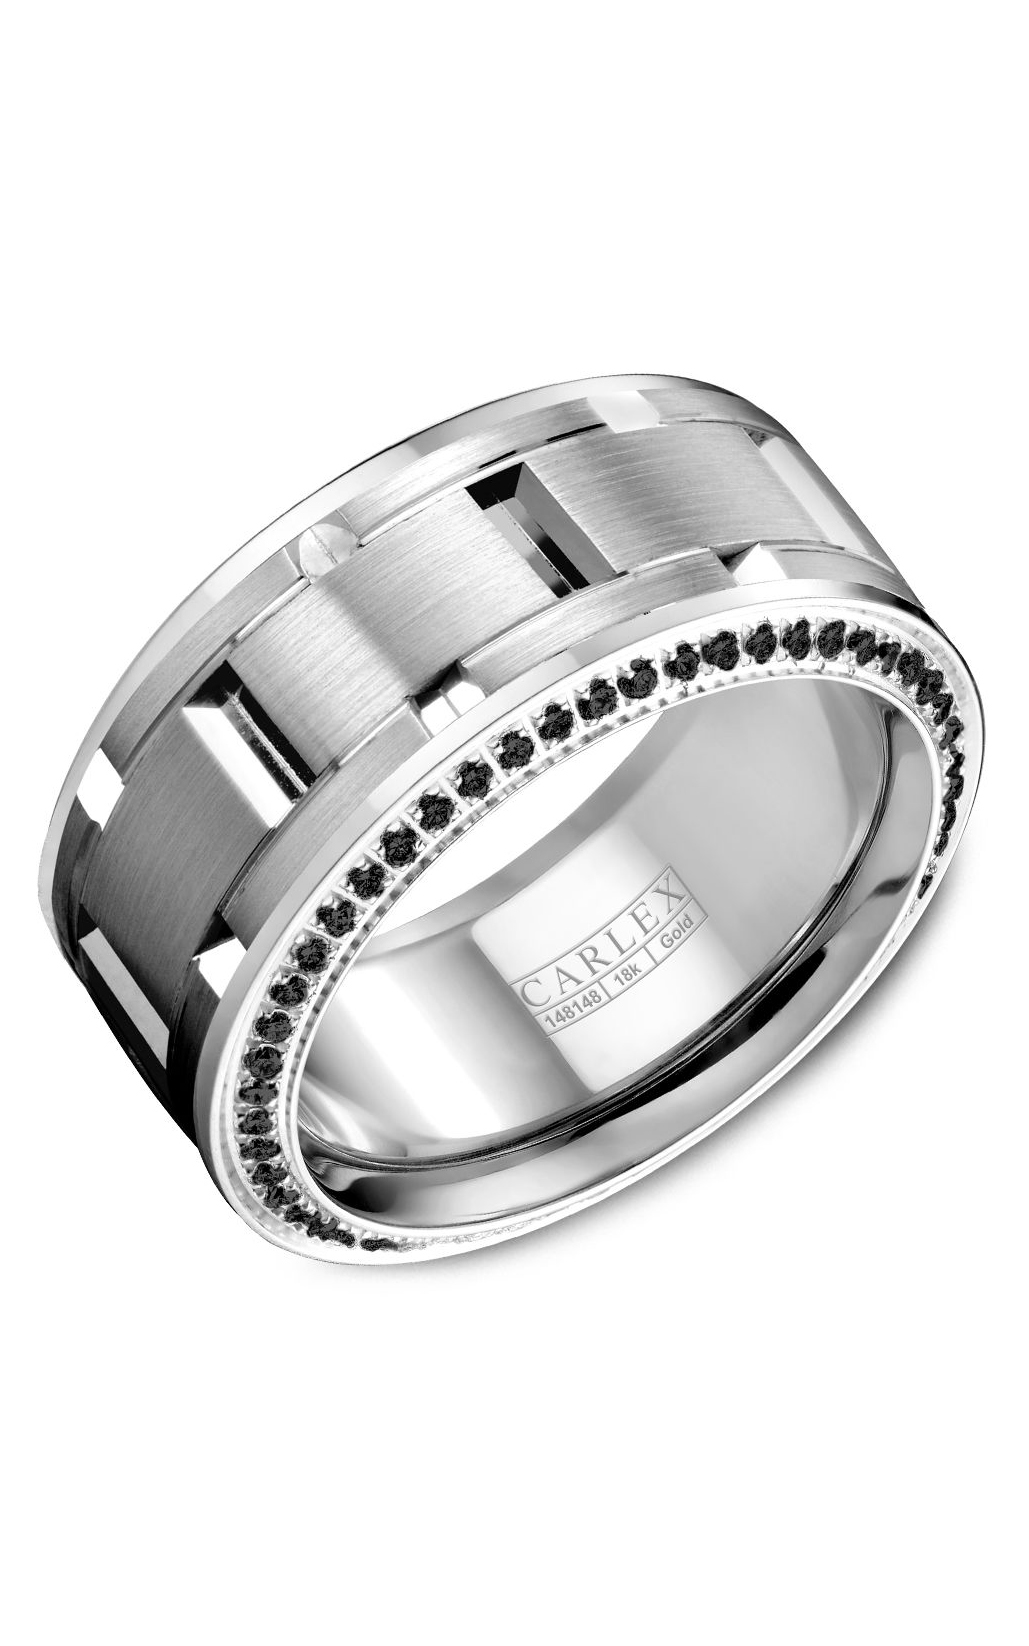 Carlex G1 Men's Wedding Band CX1-0005WWBD product image